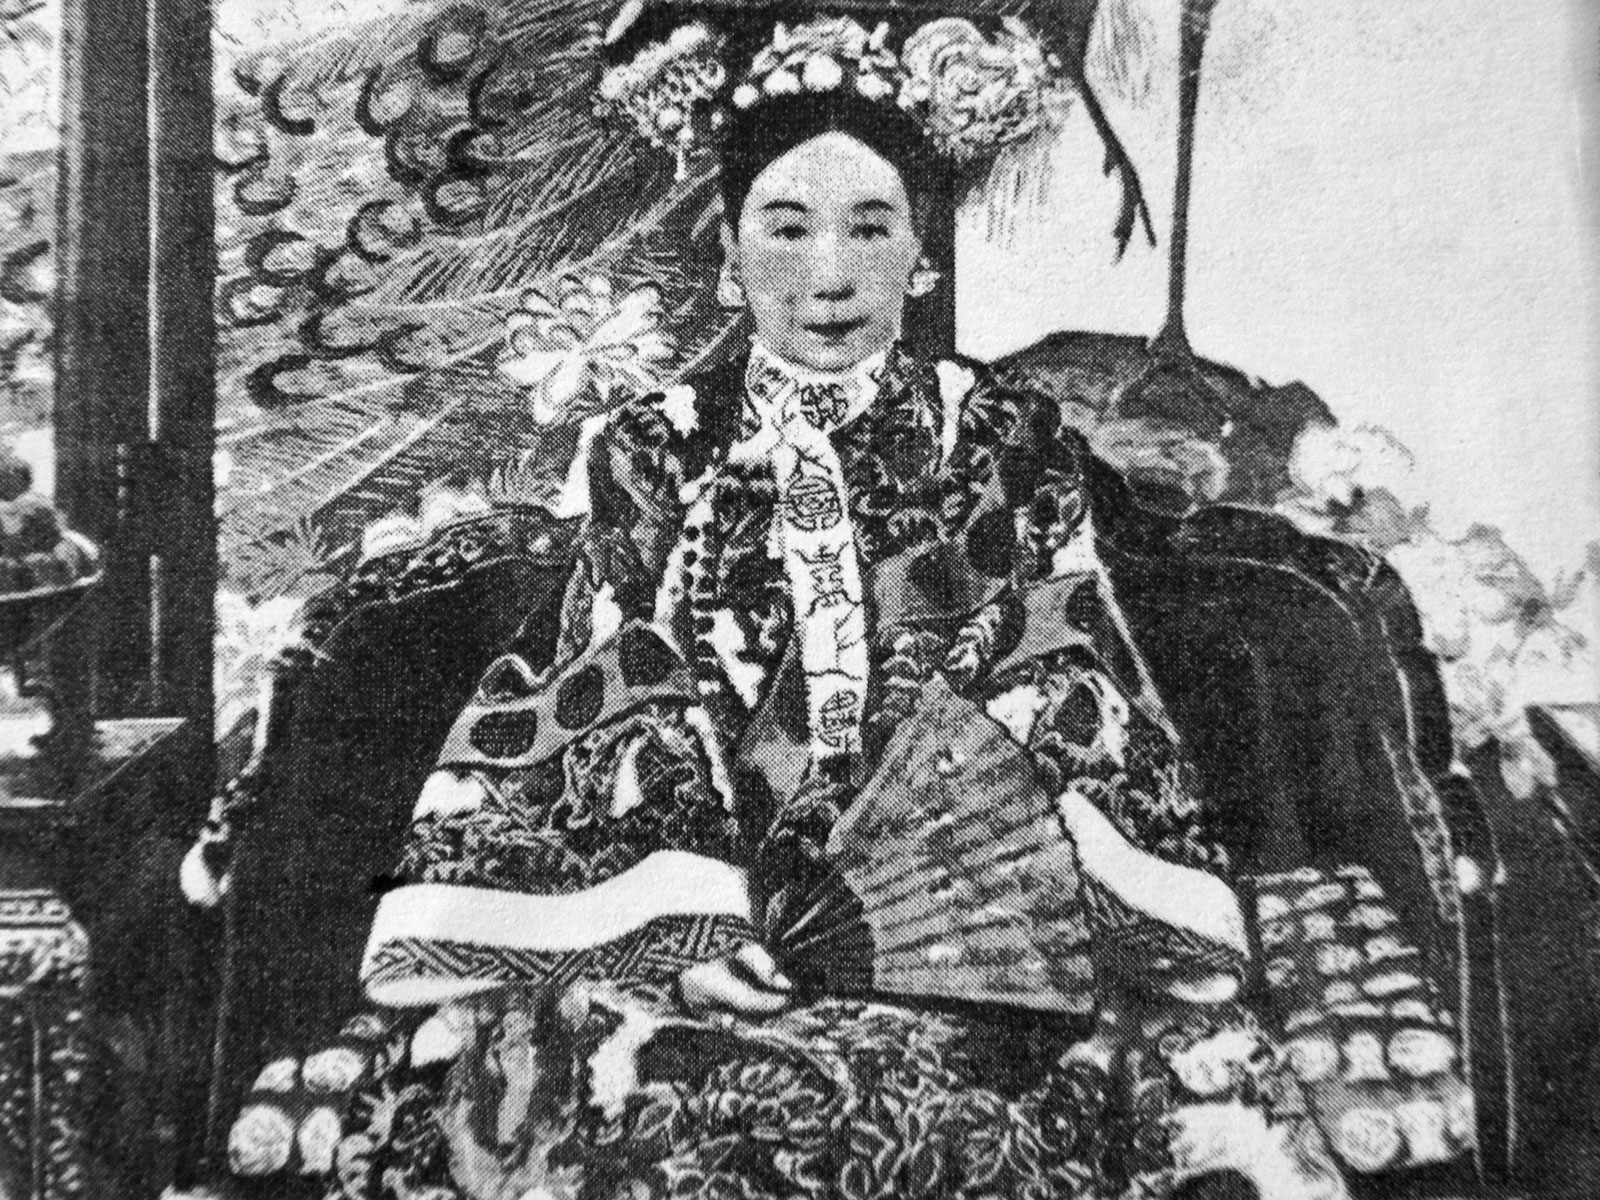 empress dowager cixi Free essay: although there may not be an extremely extensive amount of knowledge about the empress dowager cixi, she is often considered one of the most.